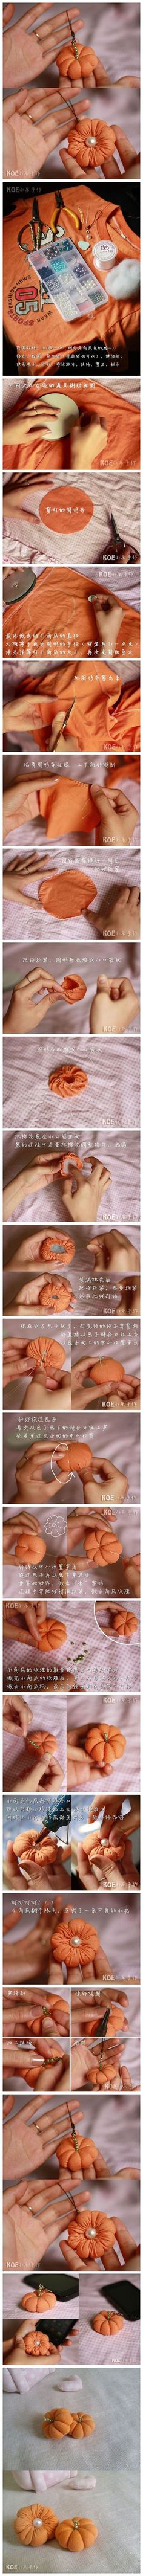 How to make Pumpkin like custom Christmas ornaments with T-Shirt step by step DIY tutorial instructions / How To Instructions